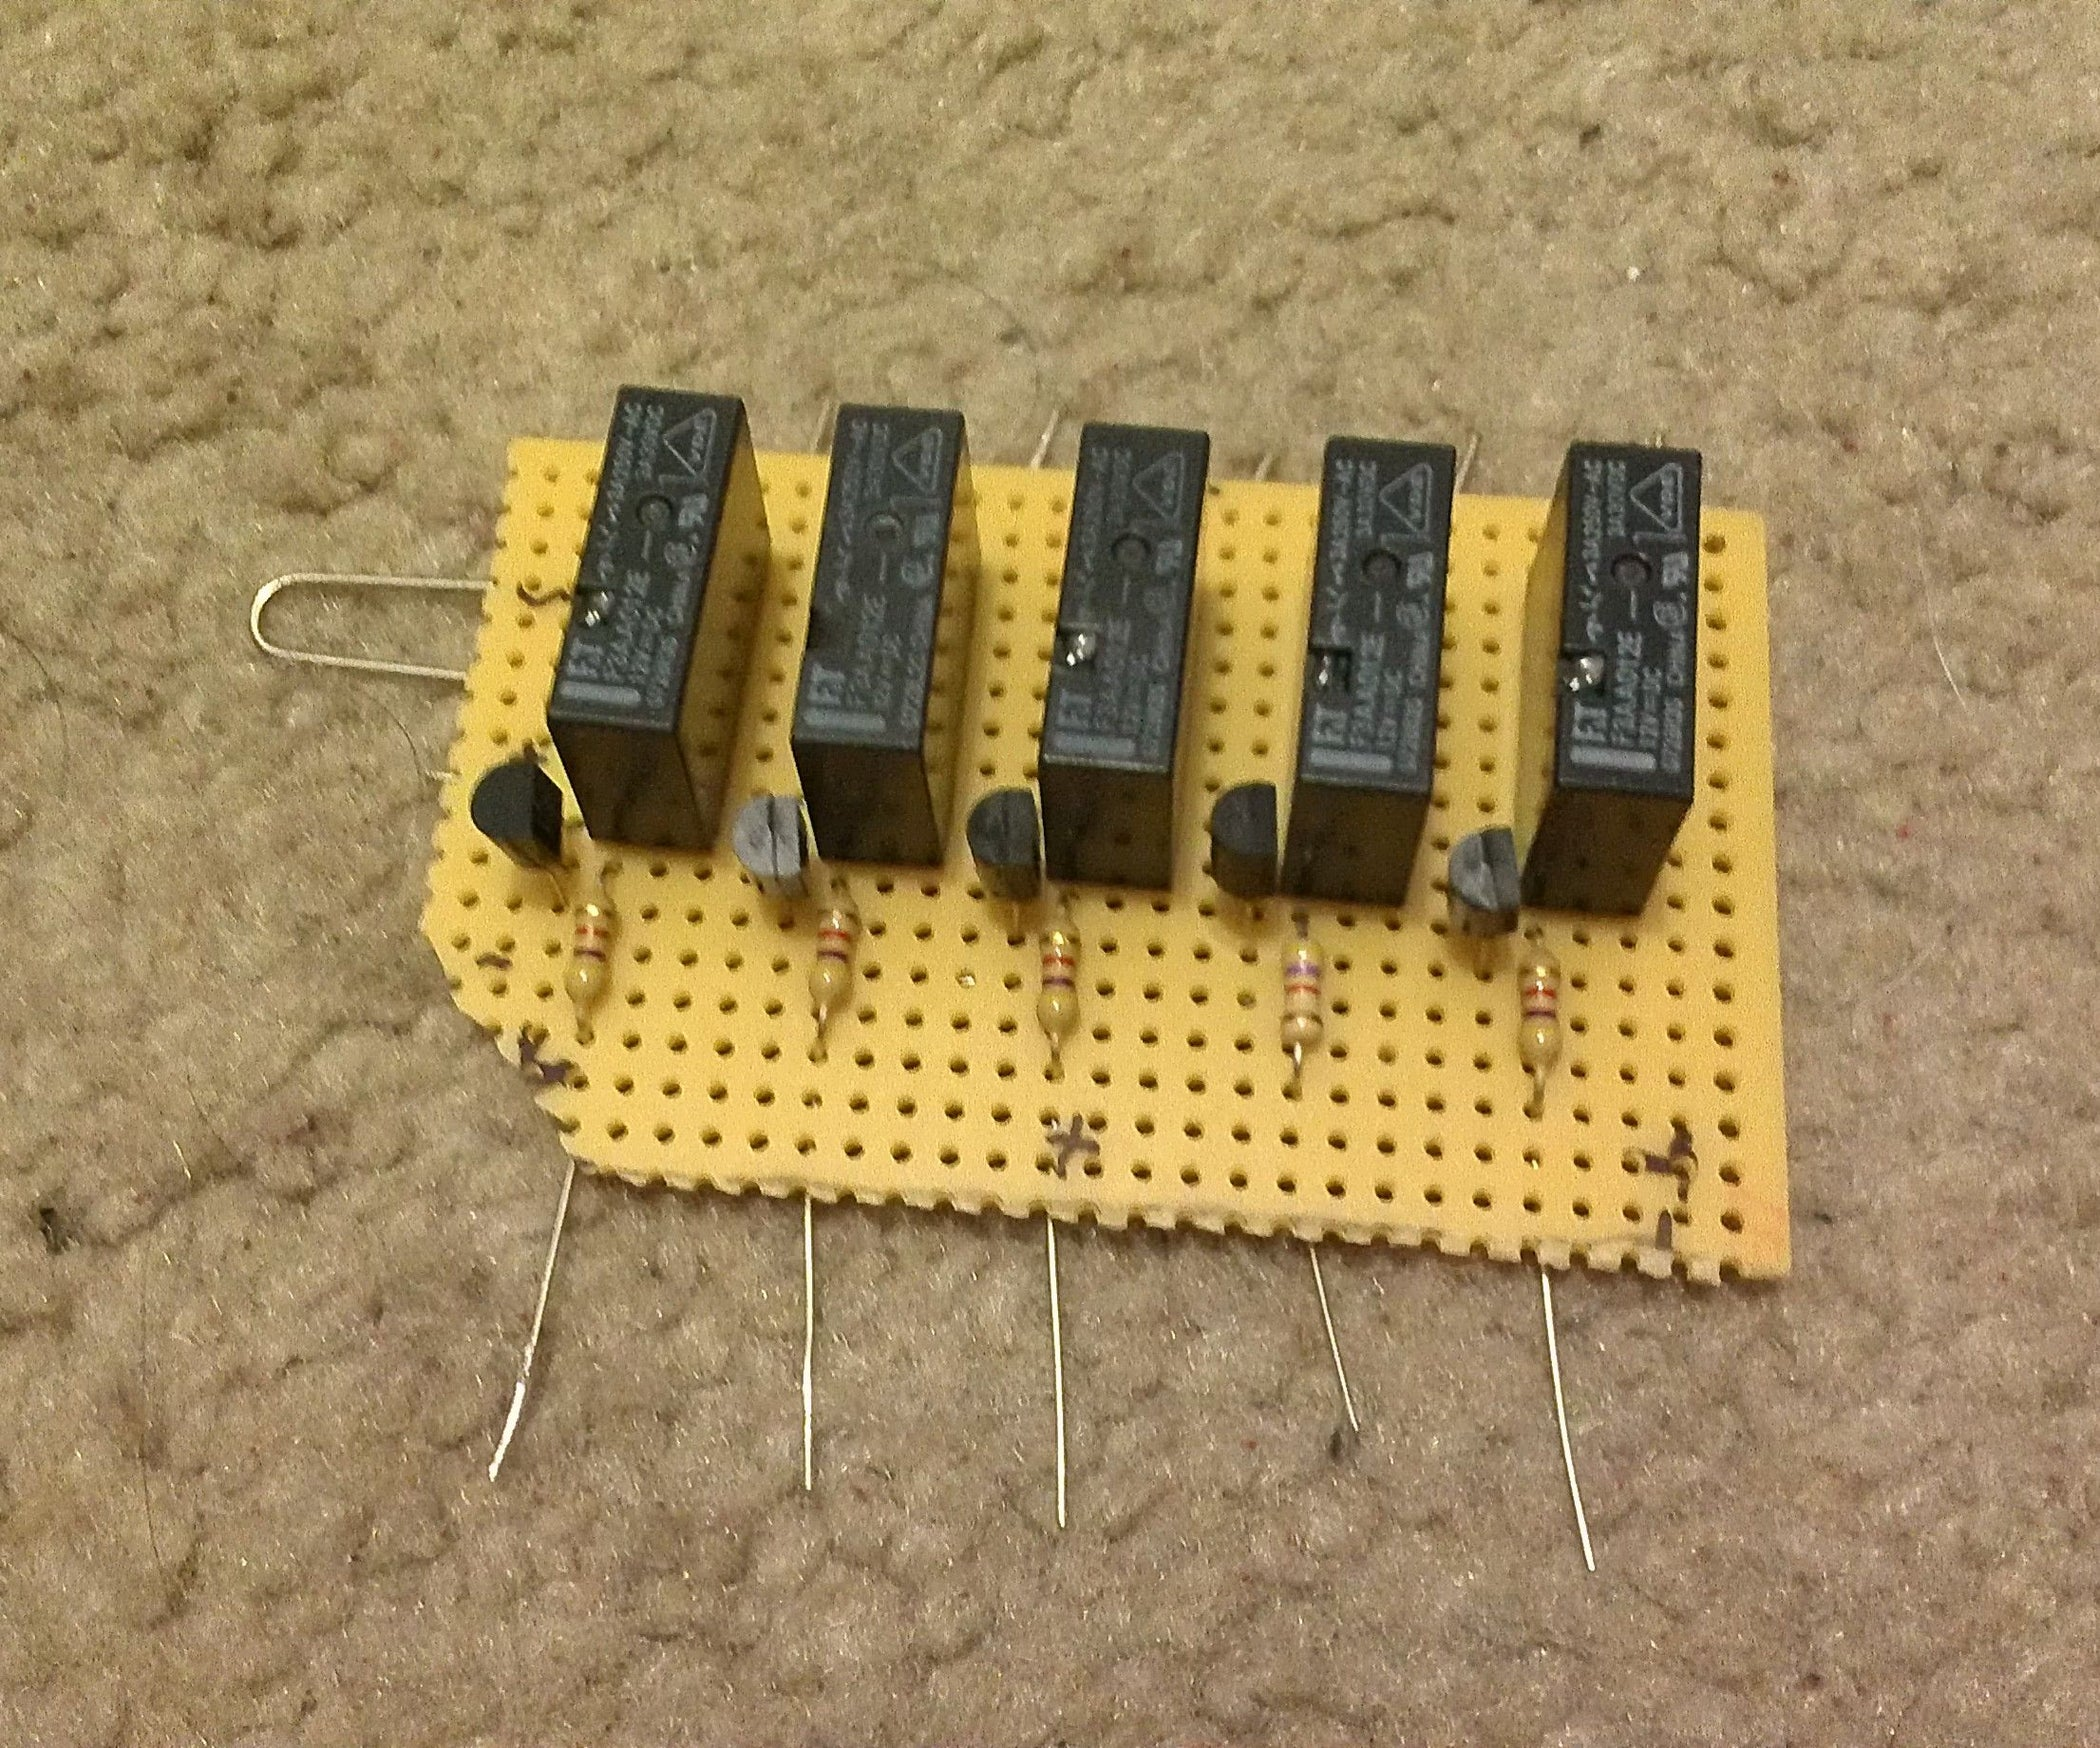 Simple Diy Christmas Light Controller 12 Steps Controlled Lights Circuit Electronic Projects